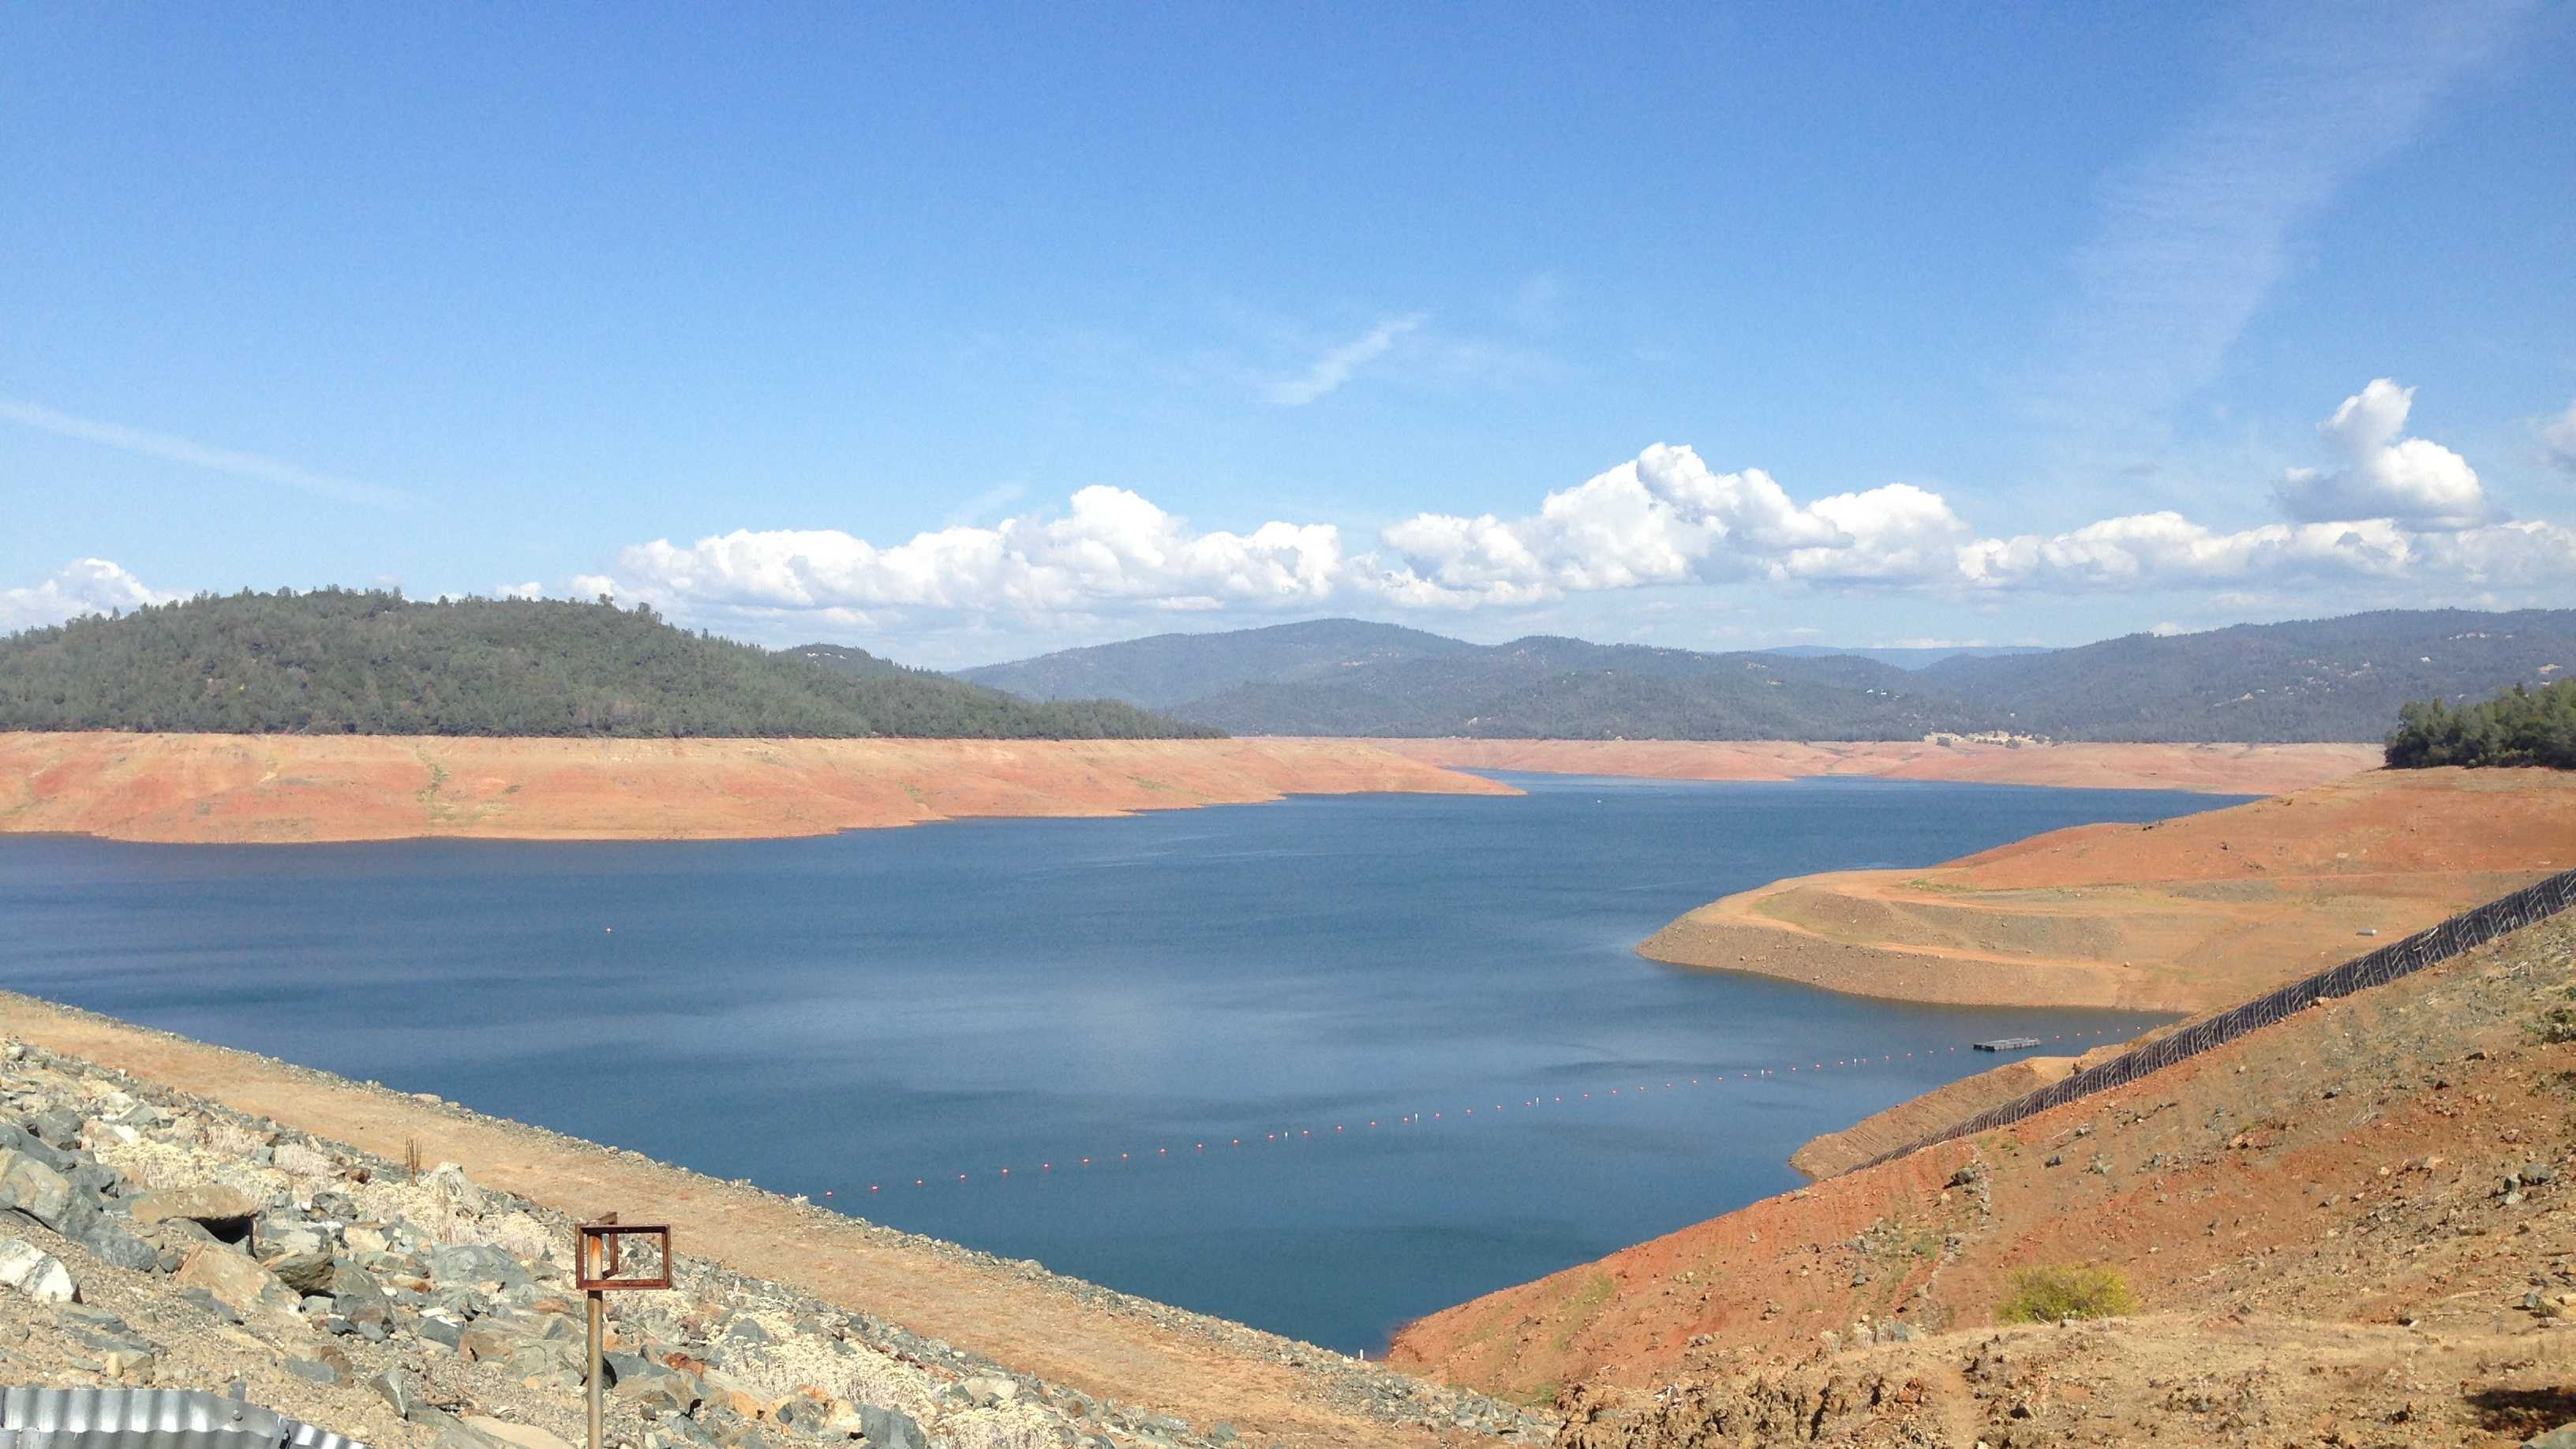 Lake Oroville is California's second-largest reservoir.  It is currently at 30 percent of capacity. Normally, at this time of year, it would be at 49 percent of capacity.